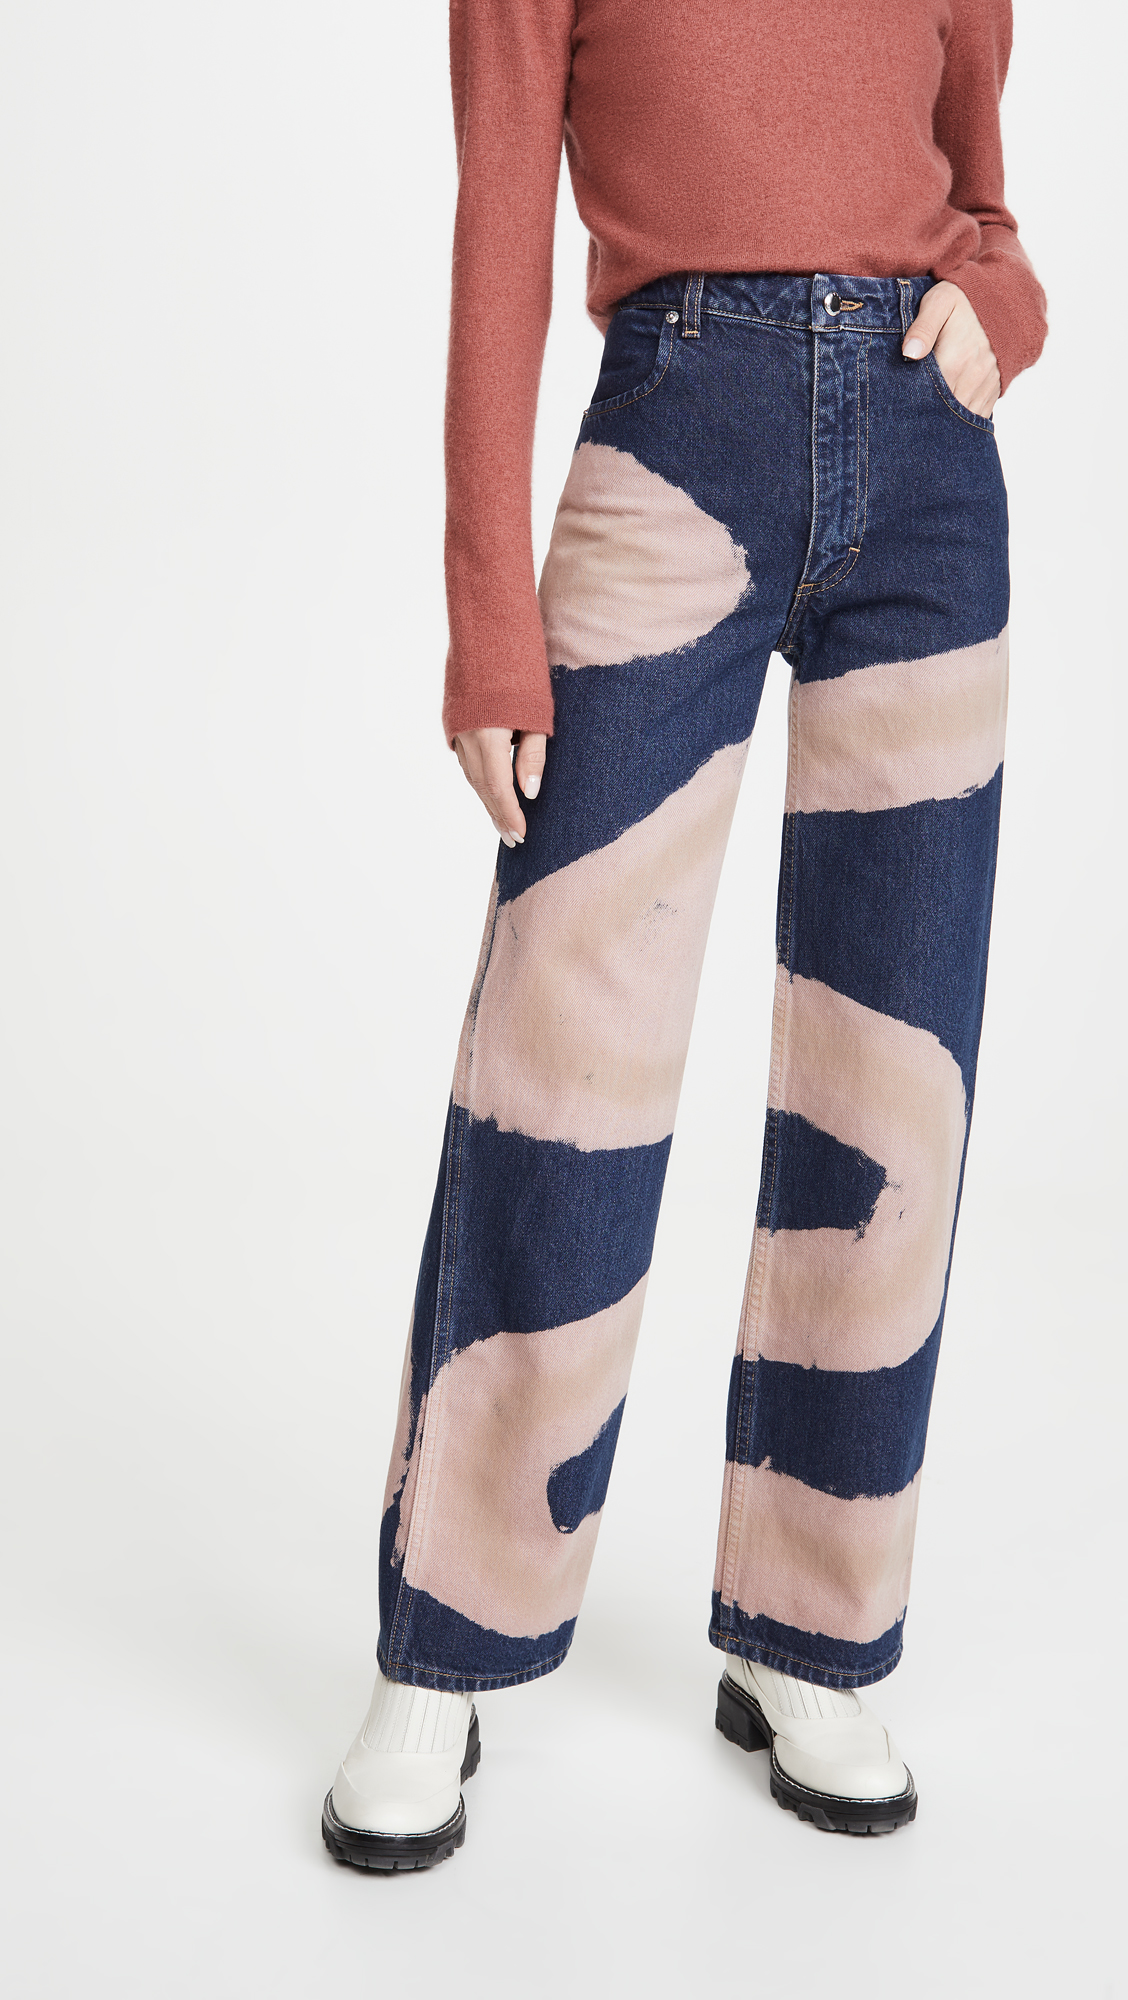 Jeans of the Week: Eckhaus Latta Wide-Leg Jeans in Blue Chemtrail